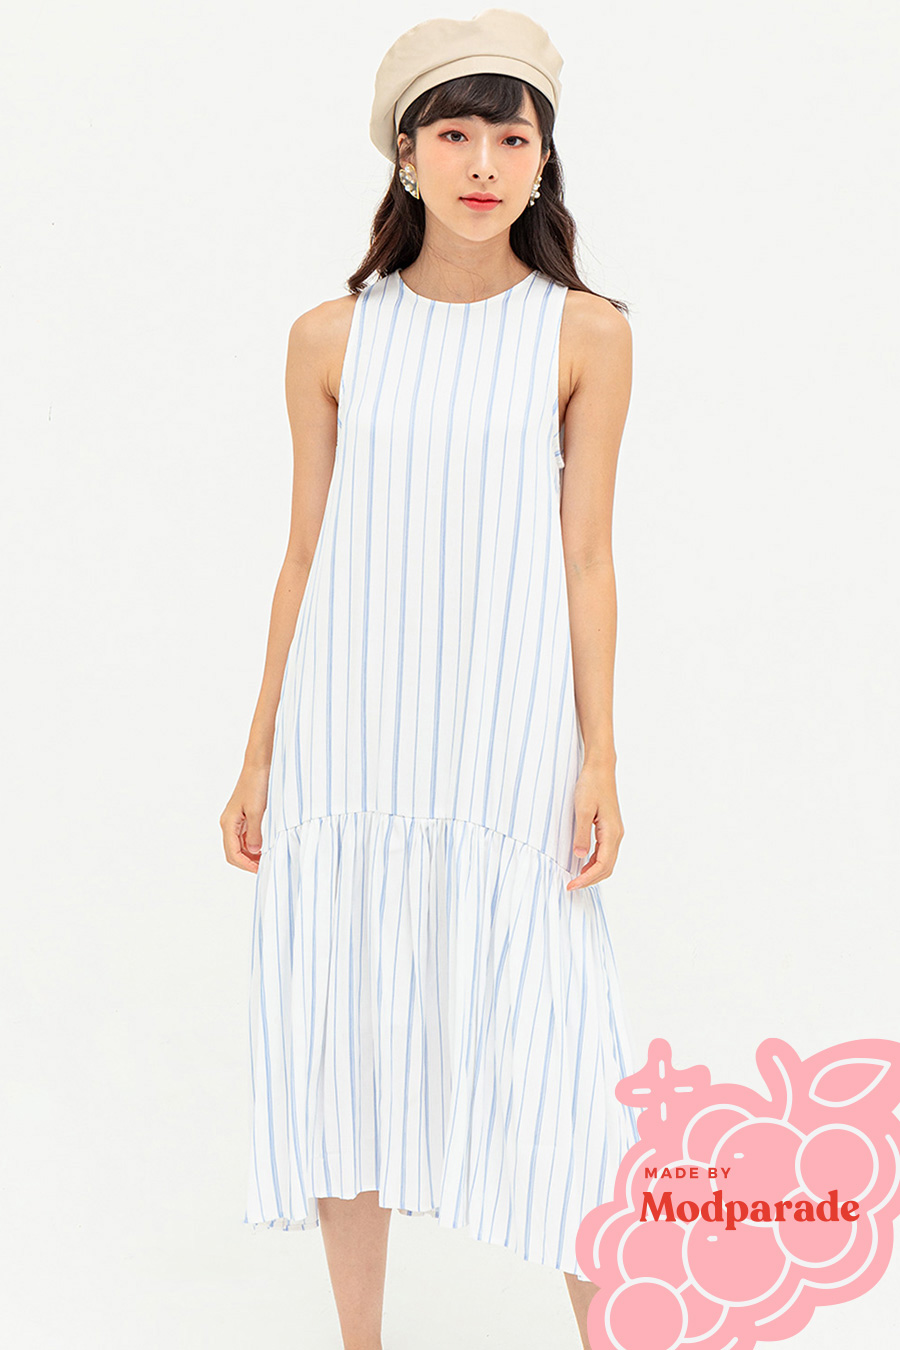 MIRANDA DRESS - BLUE HAZE STRIPE [BY MODPARADE]